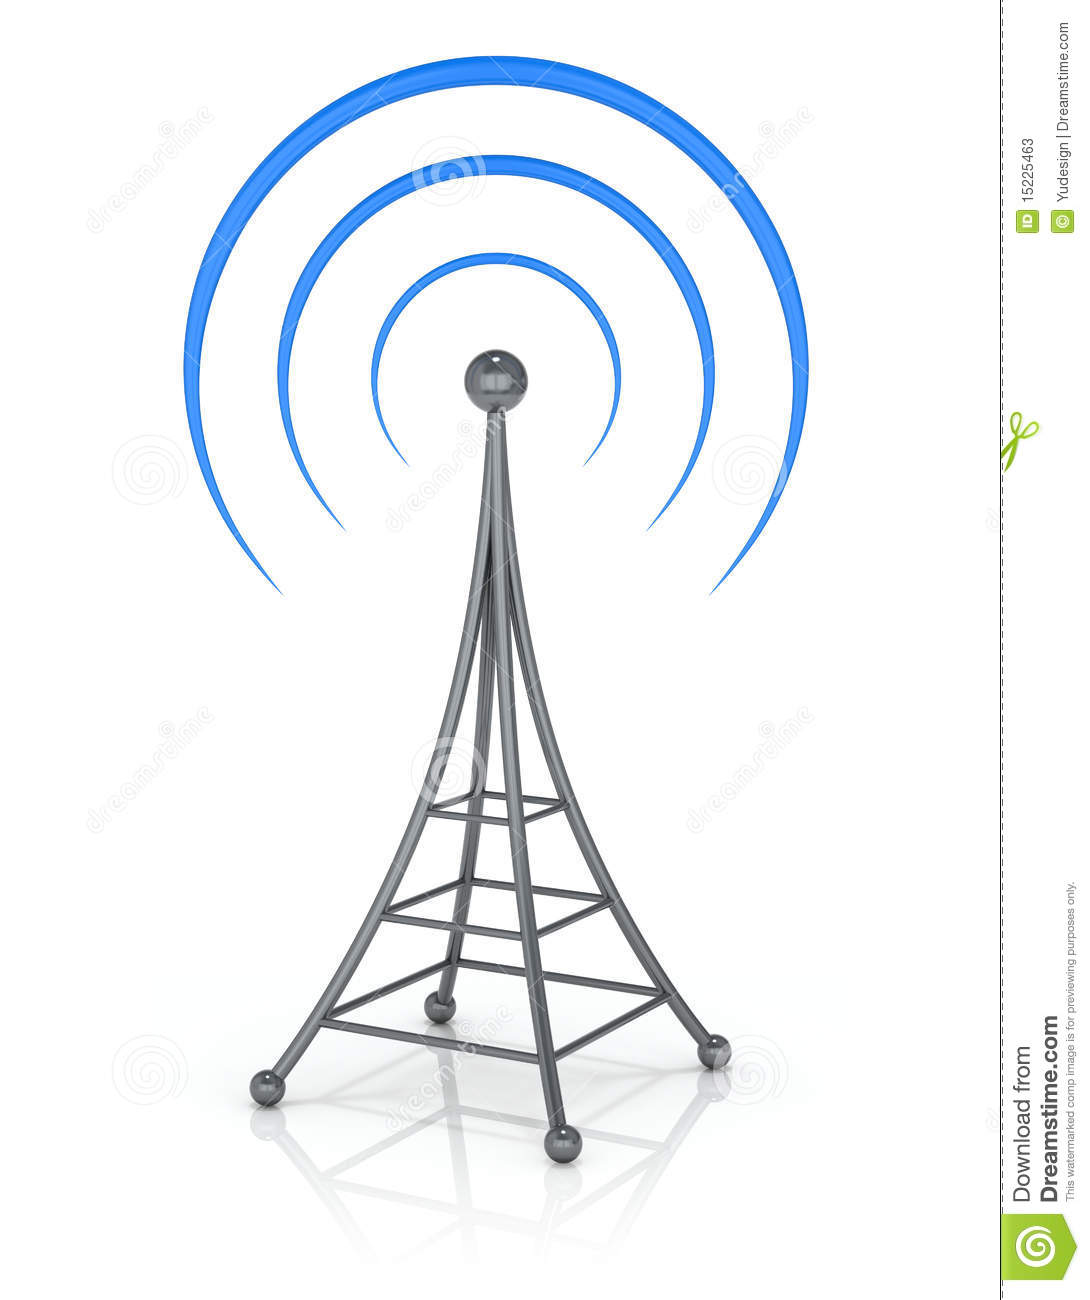 5566654 additionally Tokyo Skytree in addition Stock Photos  munication Tower Antennas Isolated White Background D Render Image33157203 further Robe Lighting Reyers Tower further Royalty Free Stock Photos Tele  Working Diagram Vector Tele munication  work Work Image30560908. on radio broadcasting tower